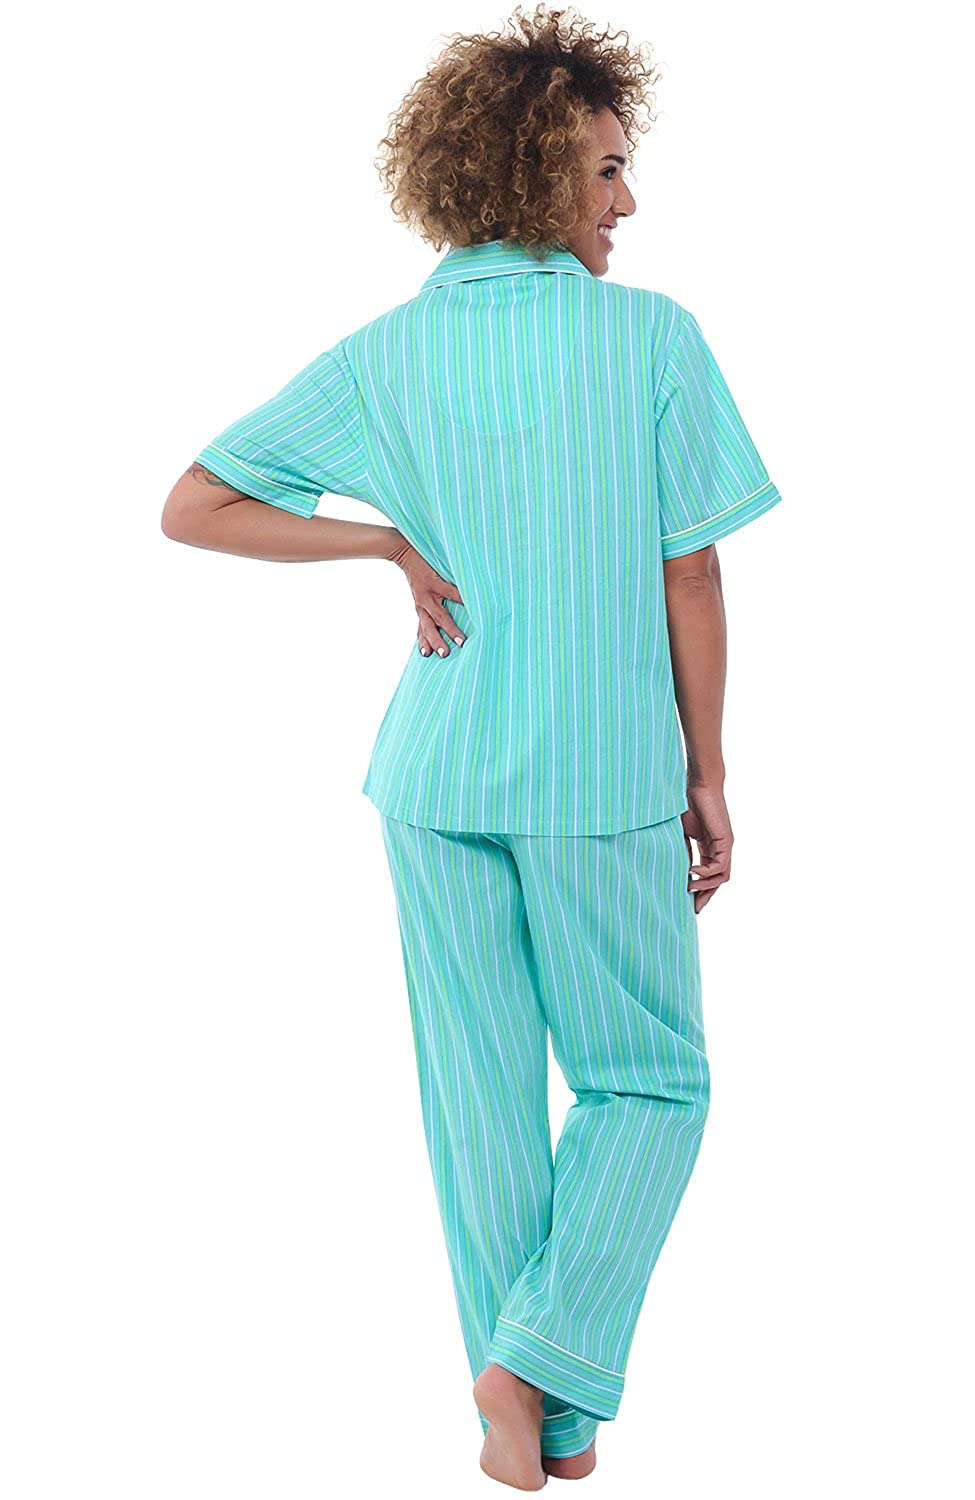 52ff9a4d4 Alexander Del Rossa Womens Woven Cotton Pajama Set with Pants ...